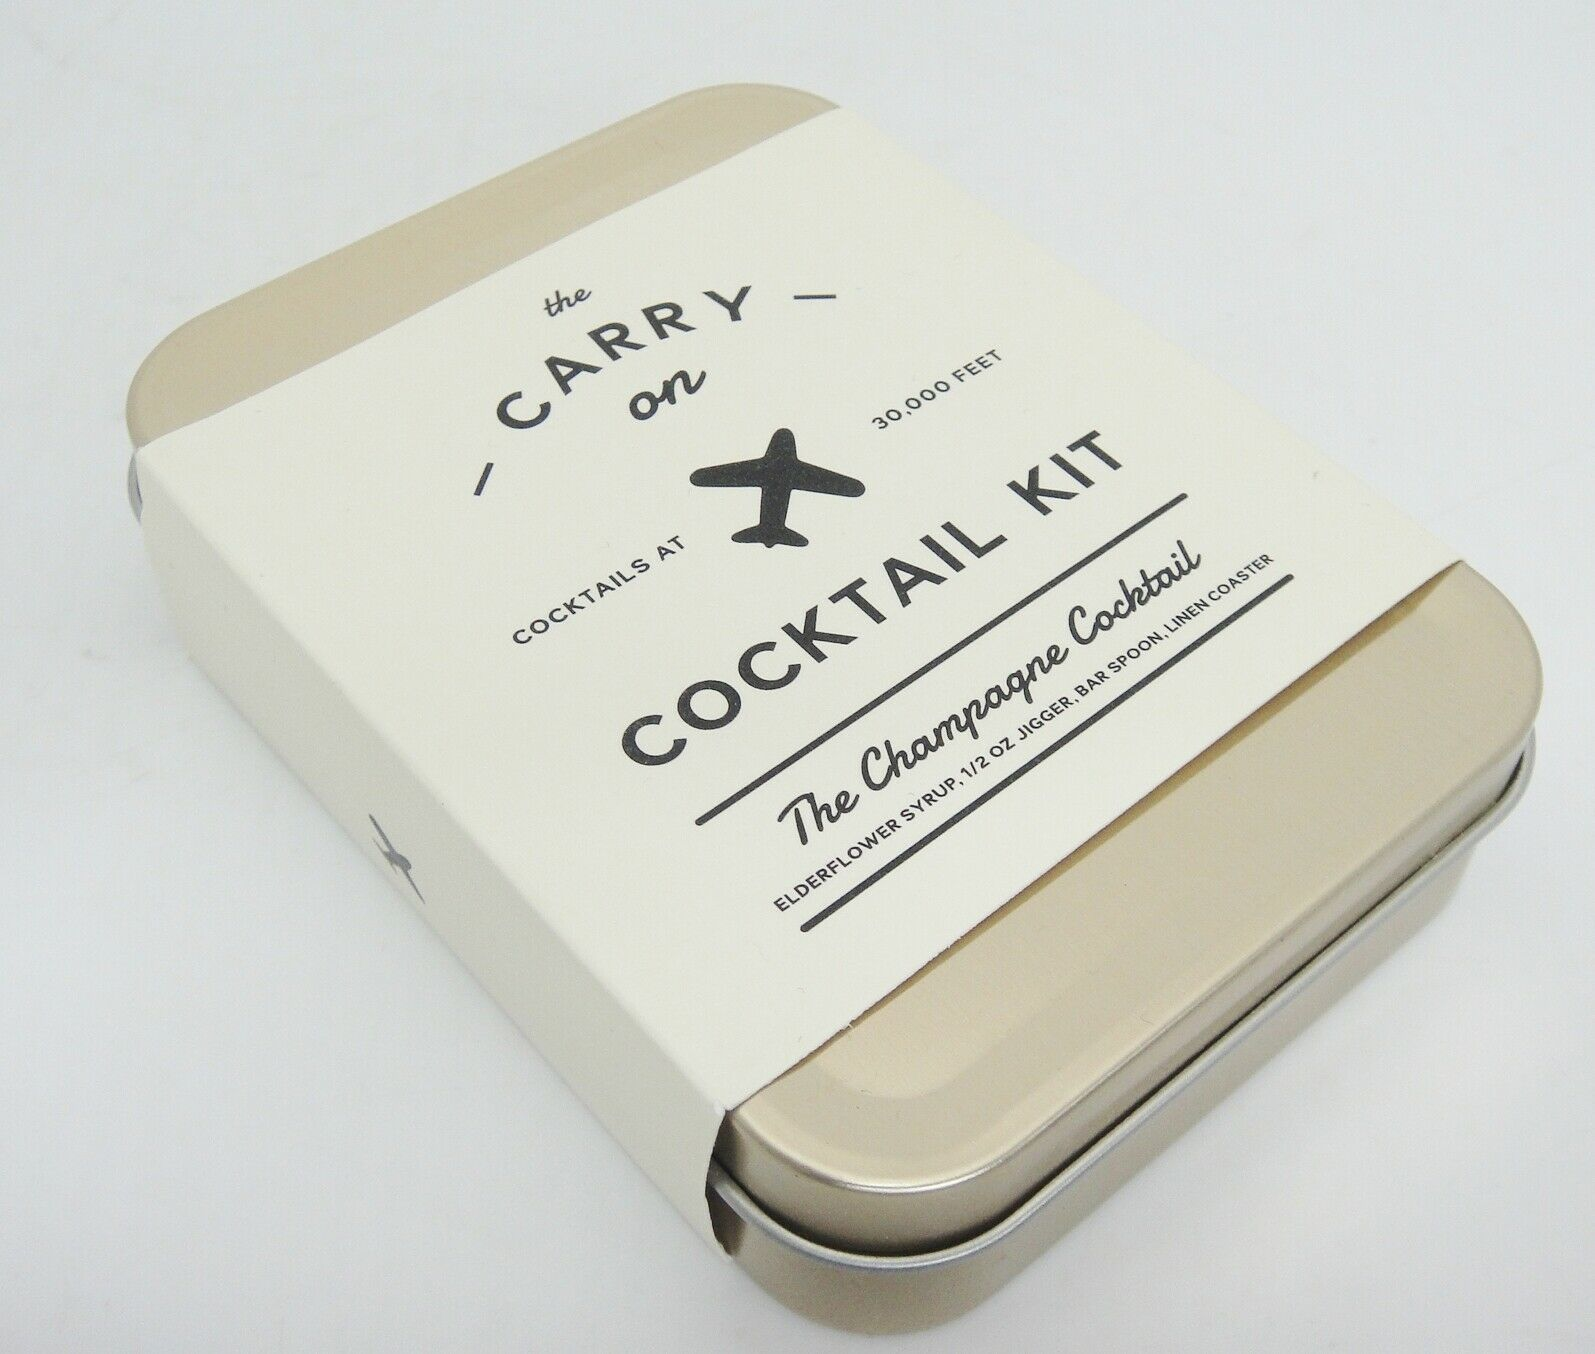 Primary image for Carry On Cocktail Kit Champagne Cocktail Elderflower Syrup Jigger Spoon Coaster